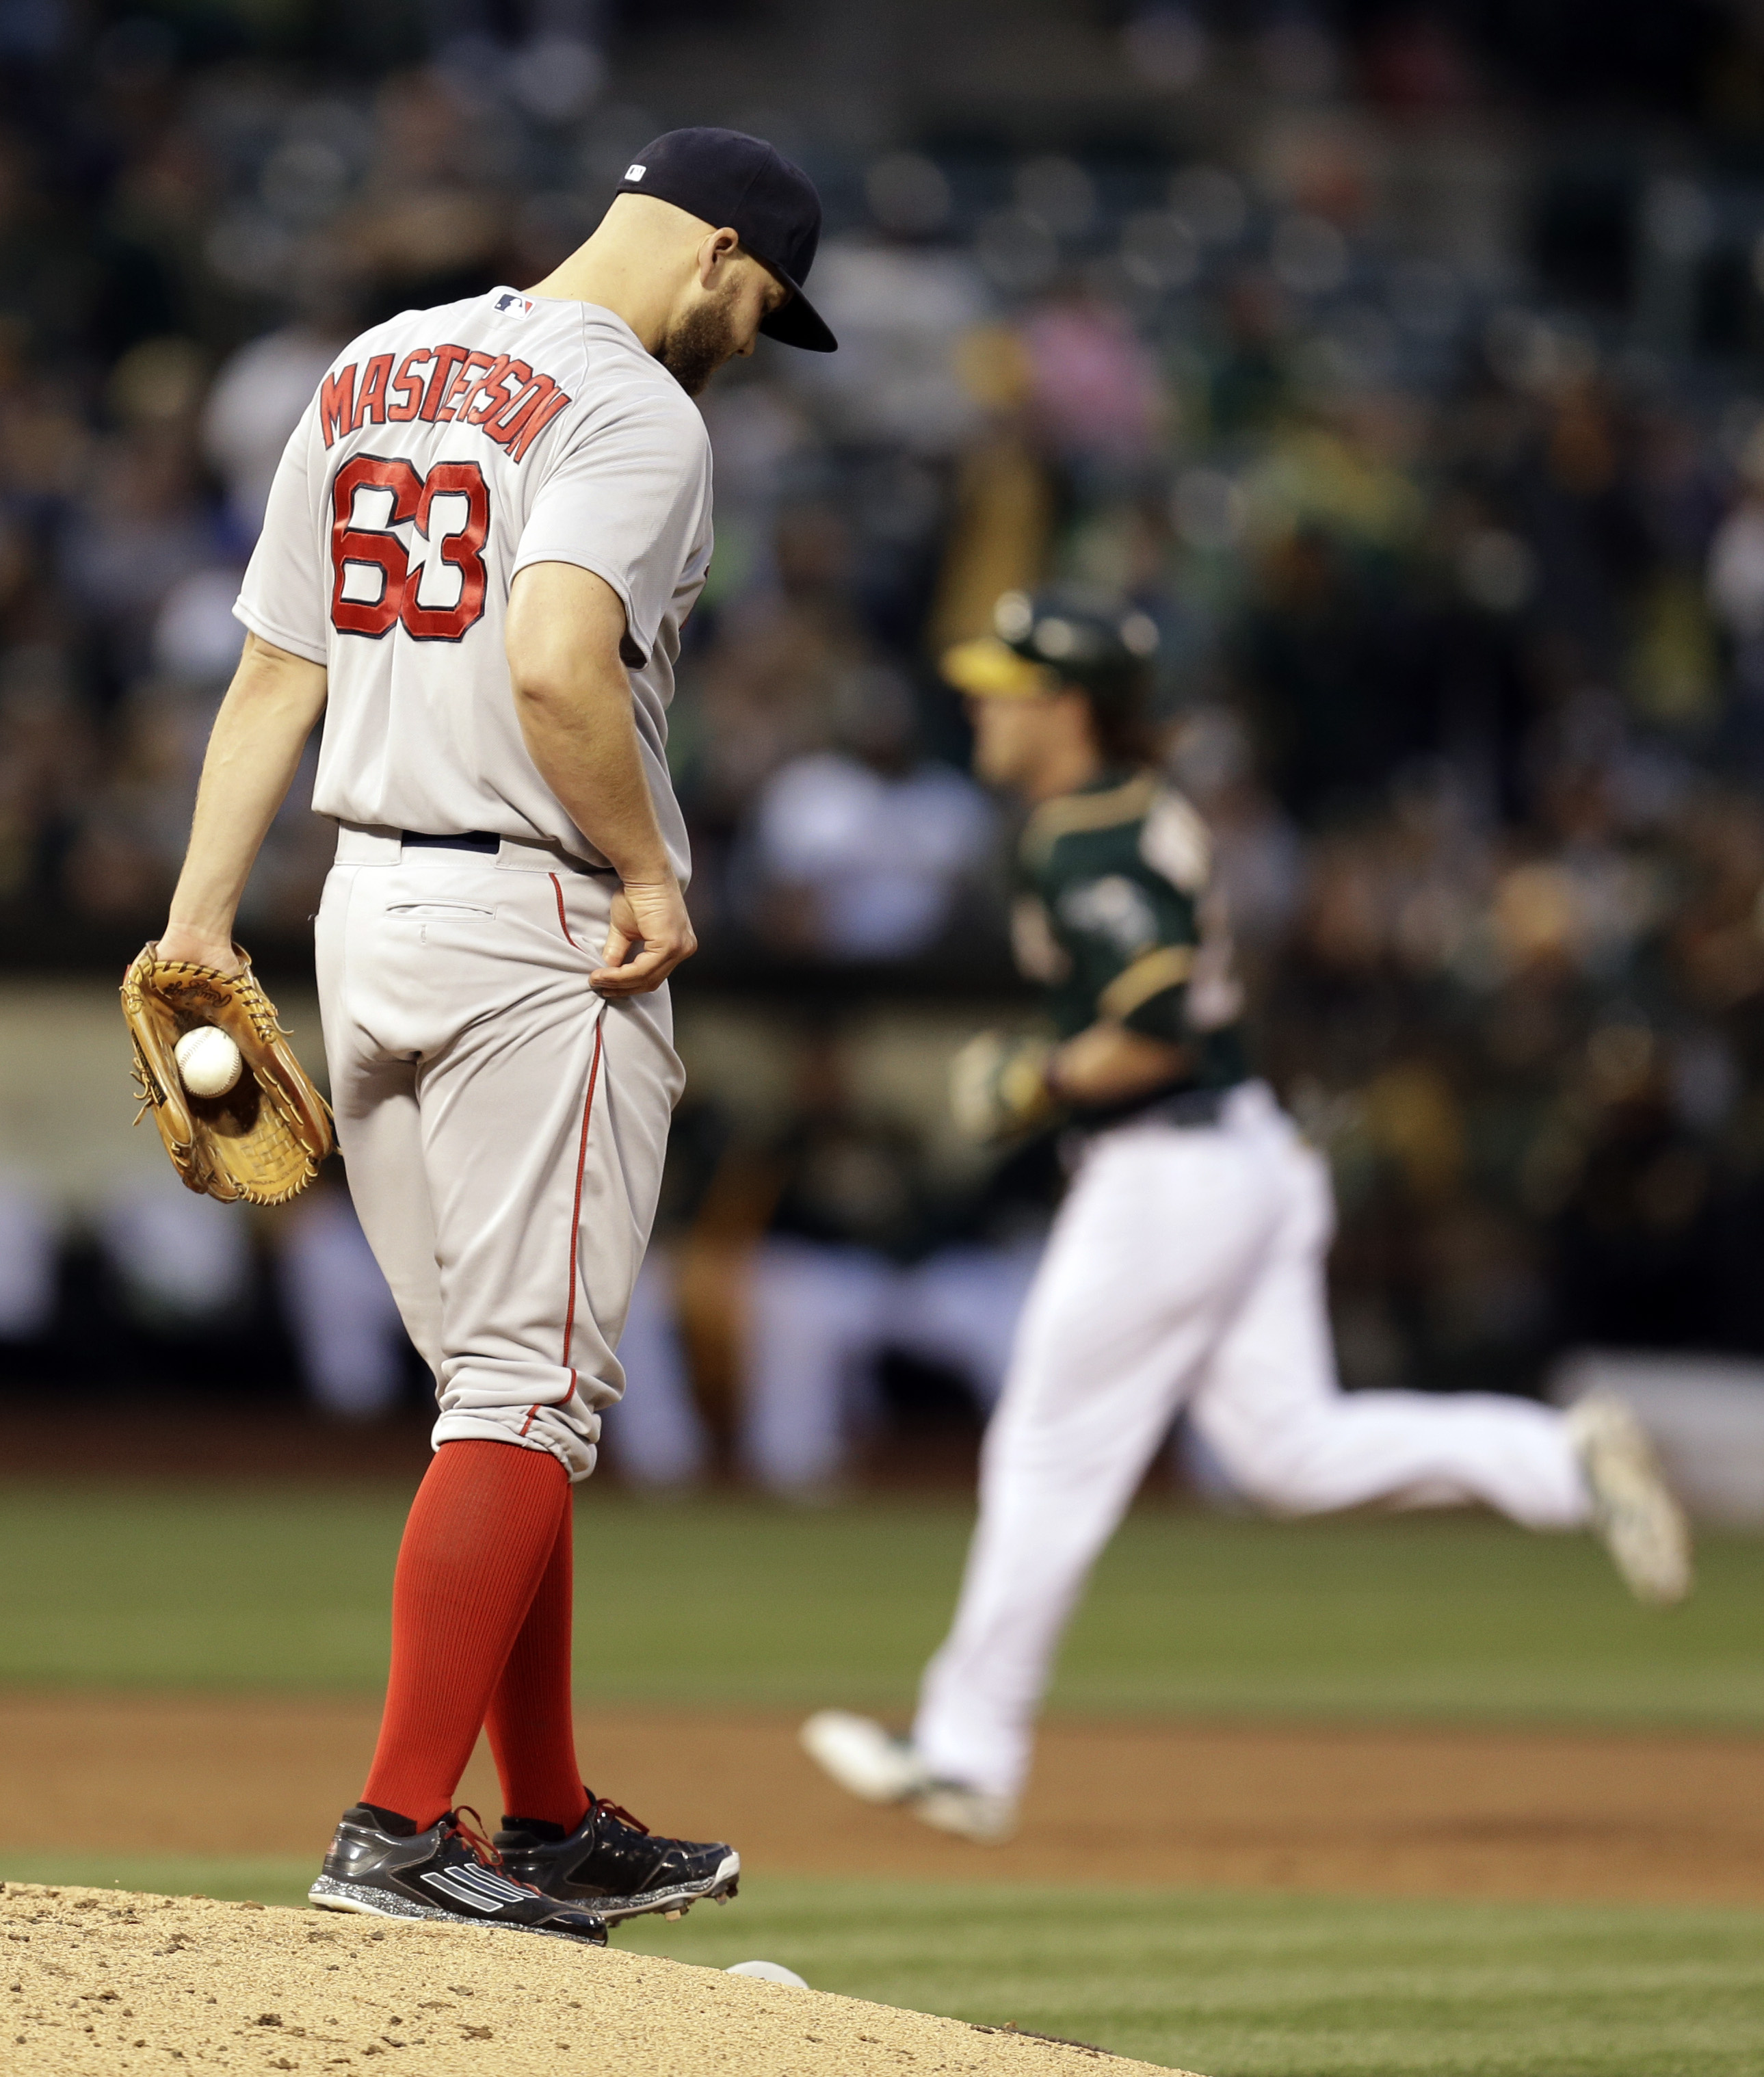 Boston Red Sox pitcher Justin Masterson, left, walks back to the mound after giving up a home run to Oakland Athletics' Josh Reddick, running the bases, right, in the third inning of a baseball game Tuesday, May 12, 2015, in Oakland, Calif. (AP Photo/Ben